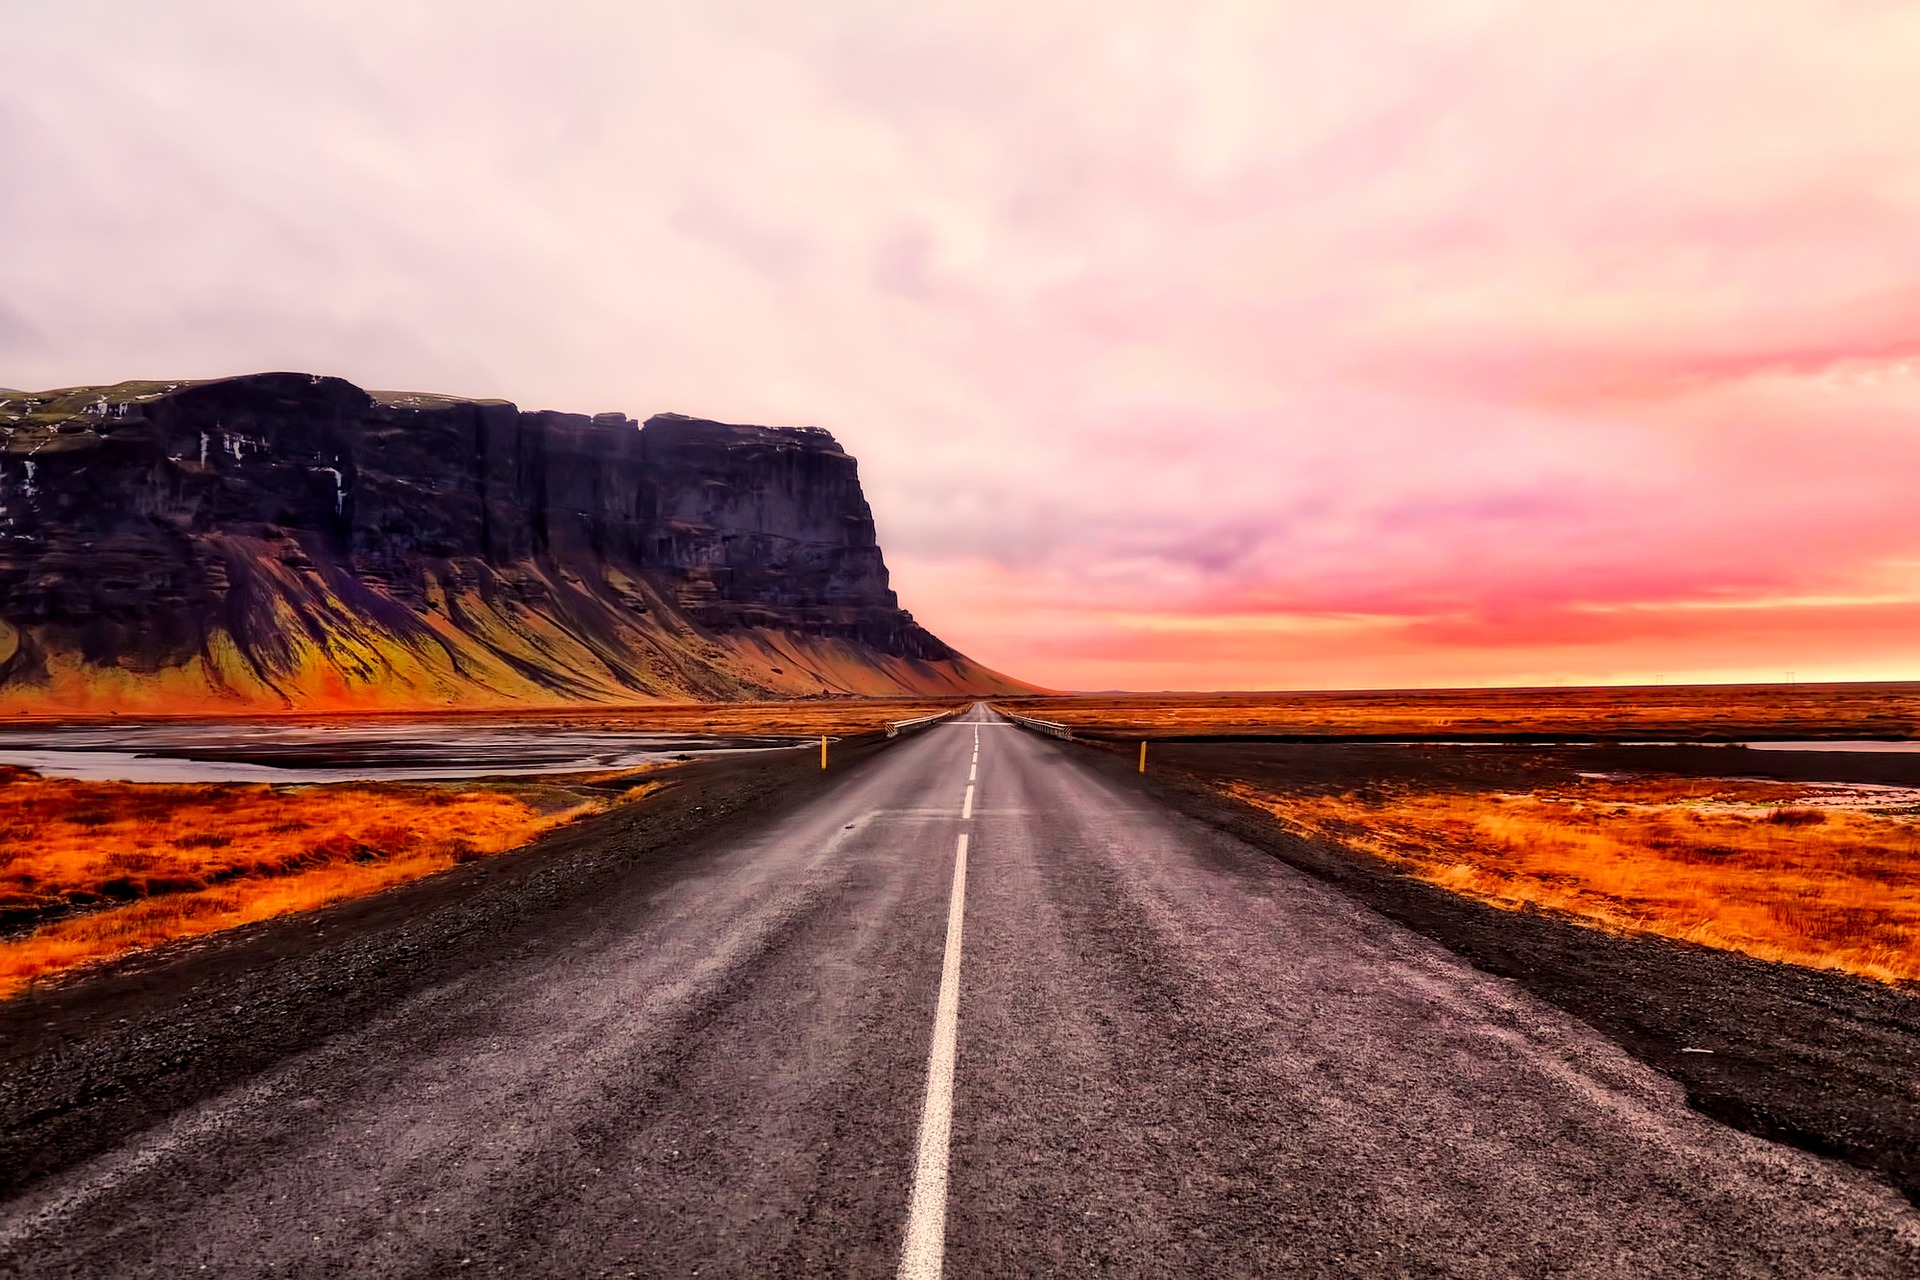 Sunset in Iceland while on nature road